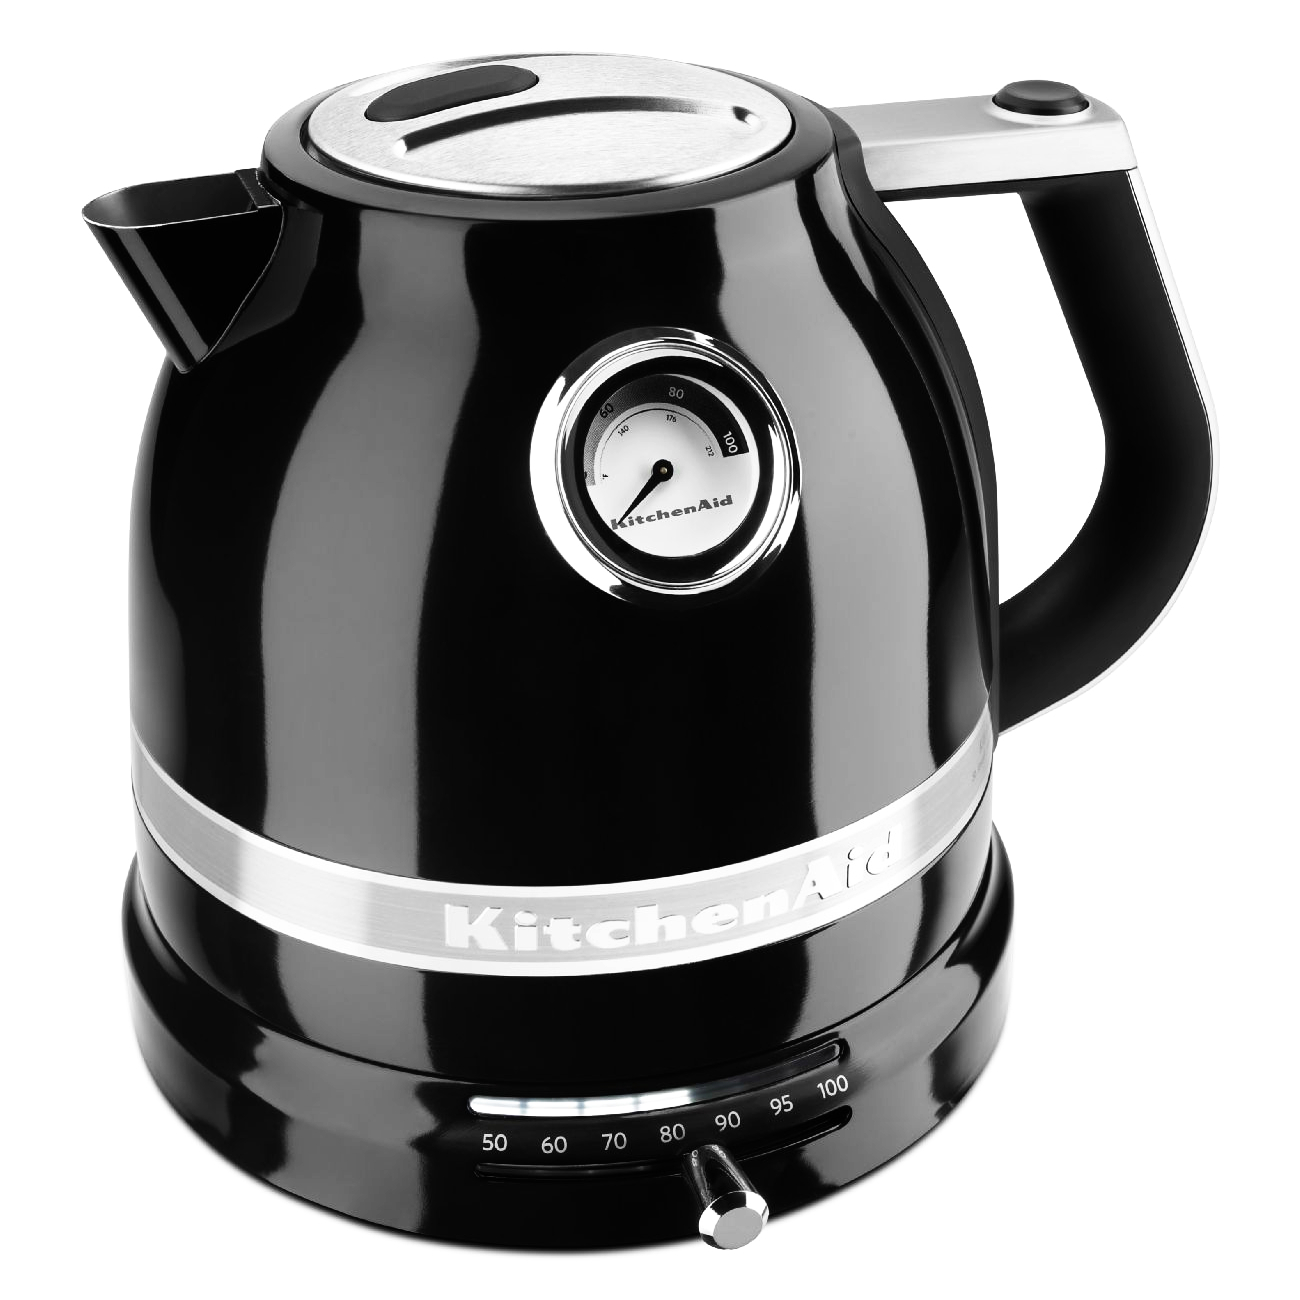 KitchenAid Pro Line Onyx Black 1.5 Liter Electric Kettle